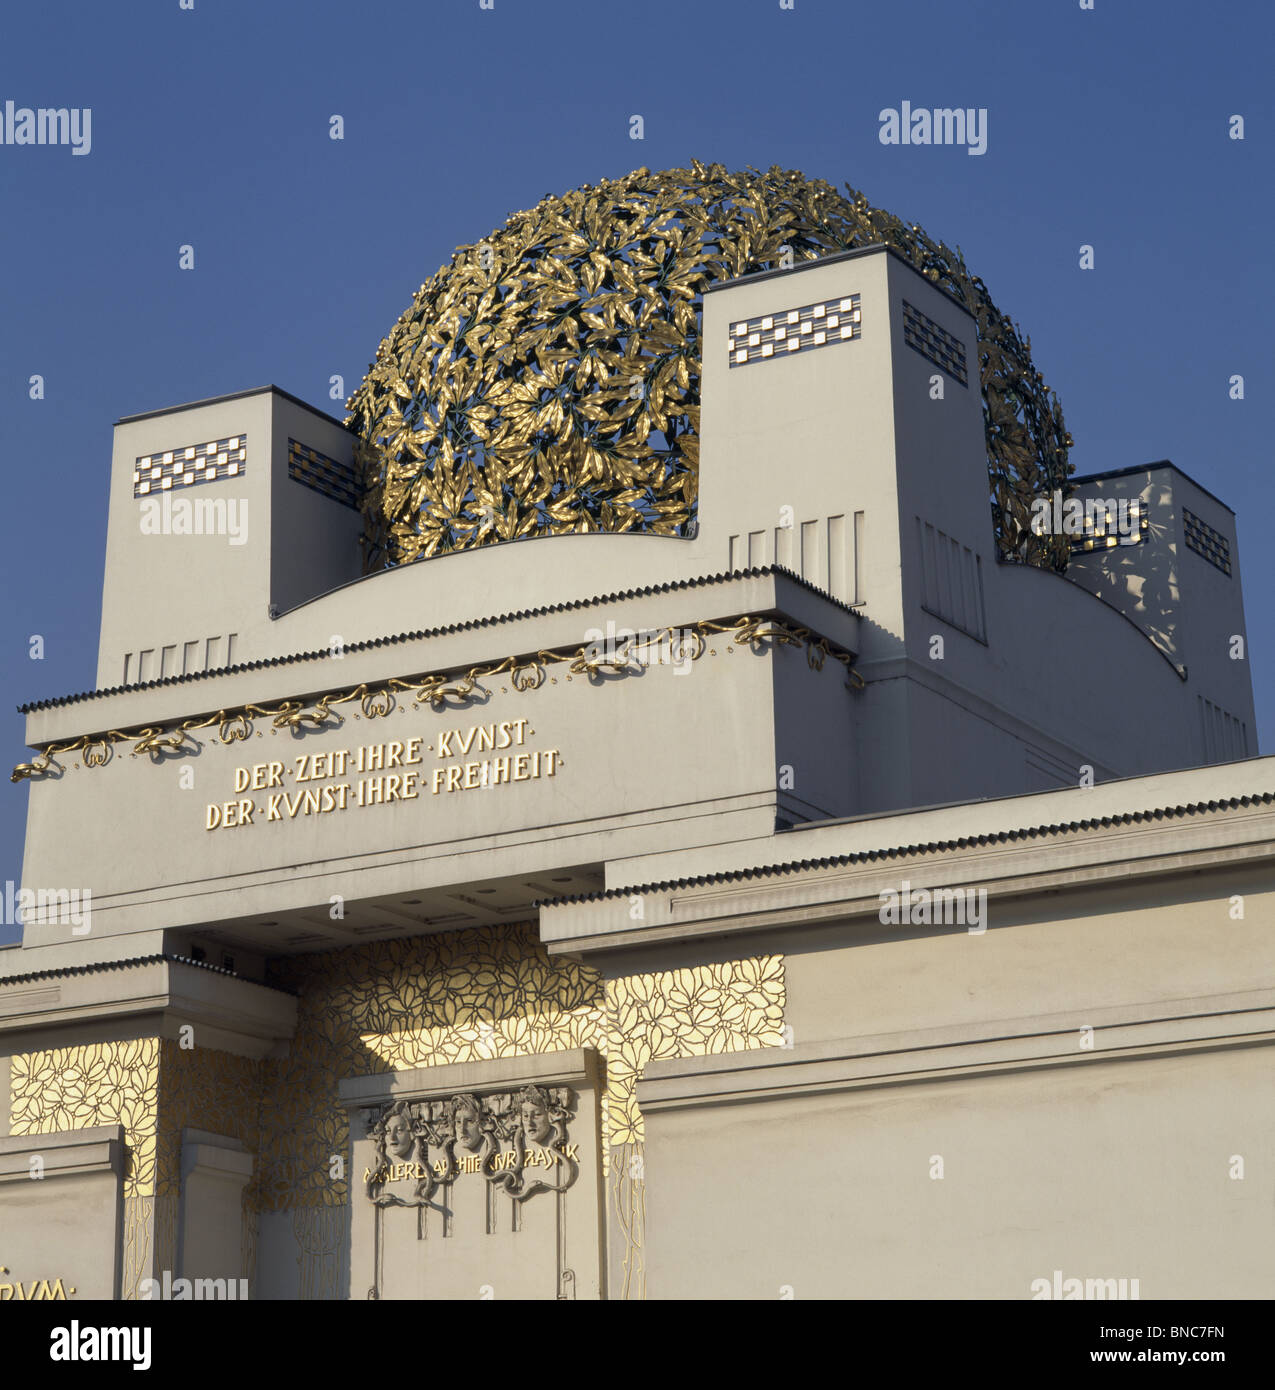 Secession (Sezession) Building Vienna by J.M. Olbrich built 1897-8. Exhibition gallery for artists of Vienna Secession. - Stock Image